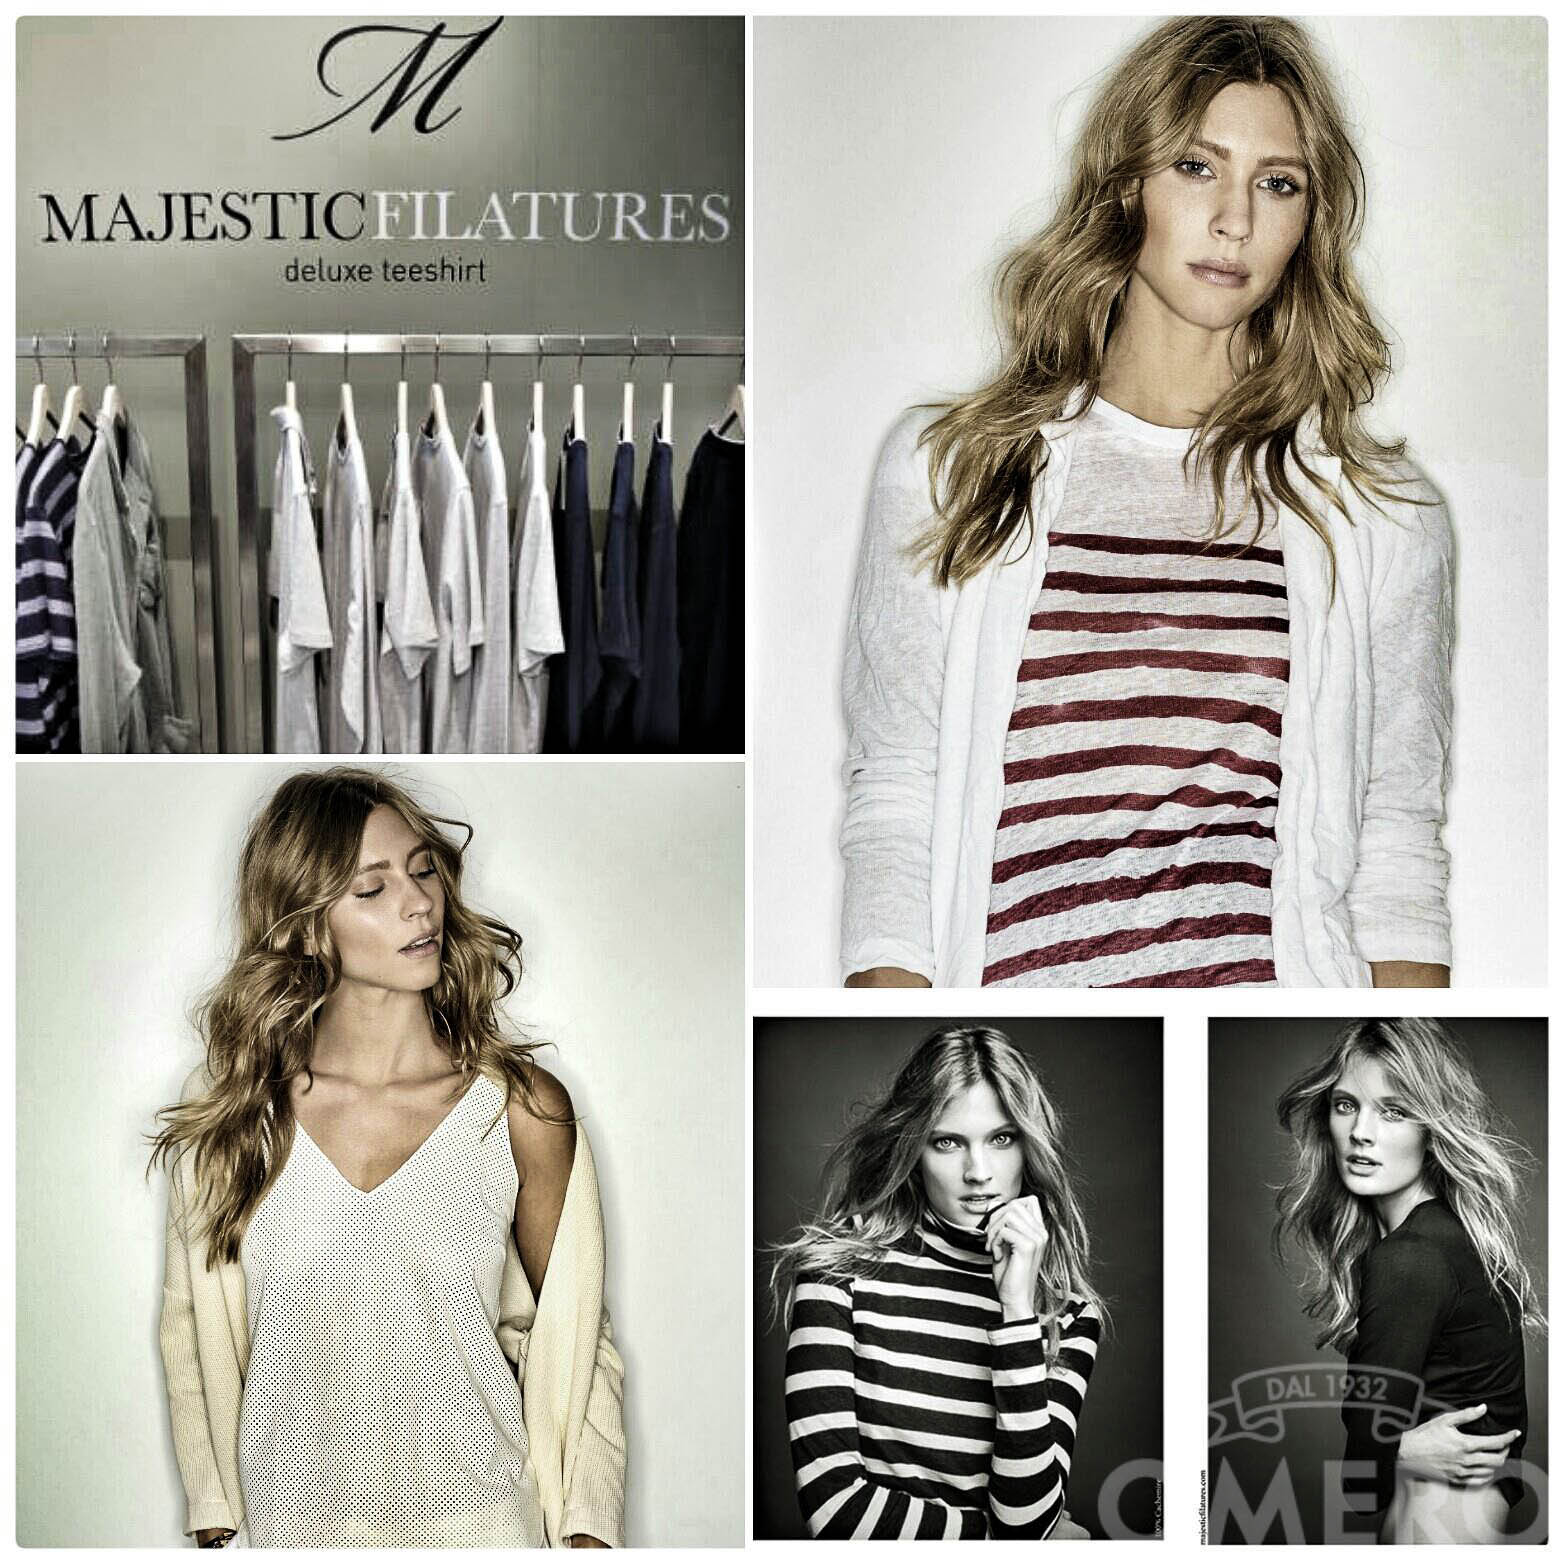 majestic filatures t-shirts uomo-donna a san benedetto del tronto teeshirts deluxe